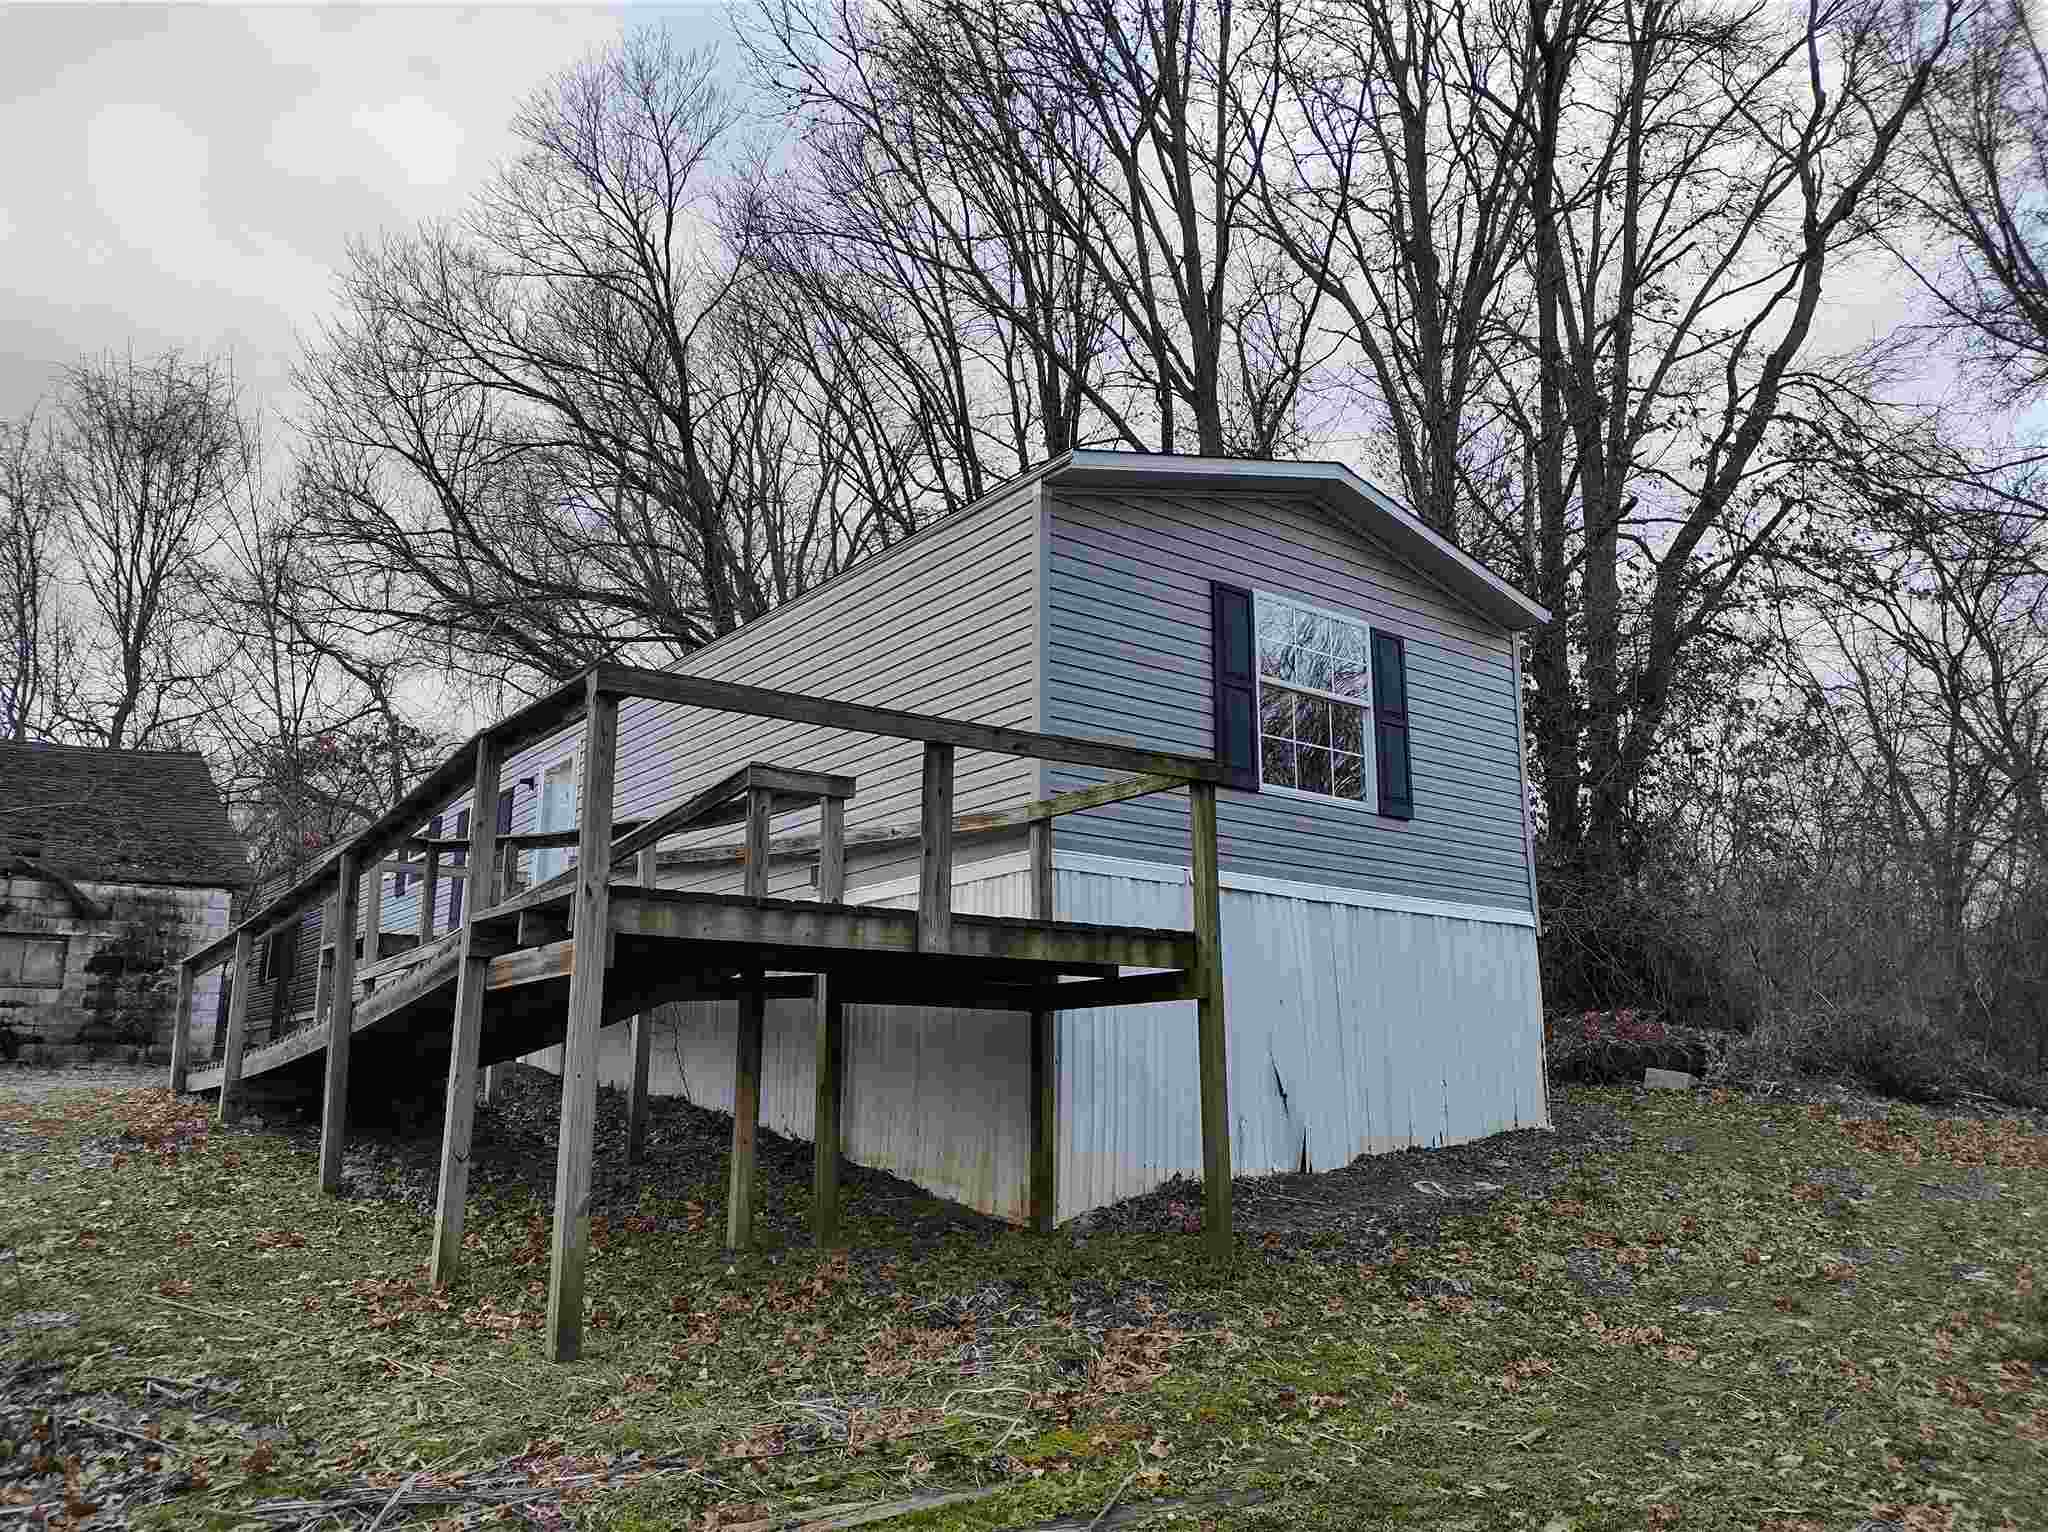 702 N SUMMIT Property Photo - Carmi, IL real estate listing